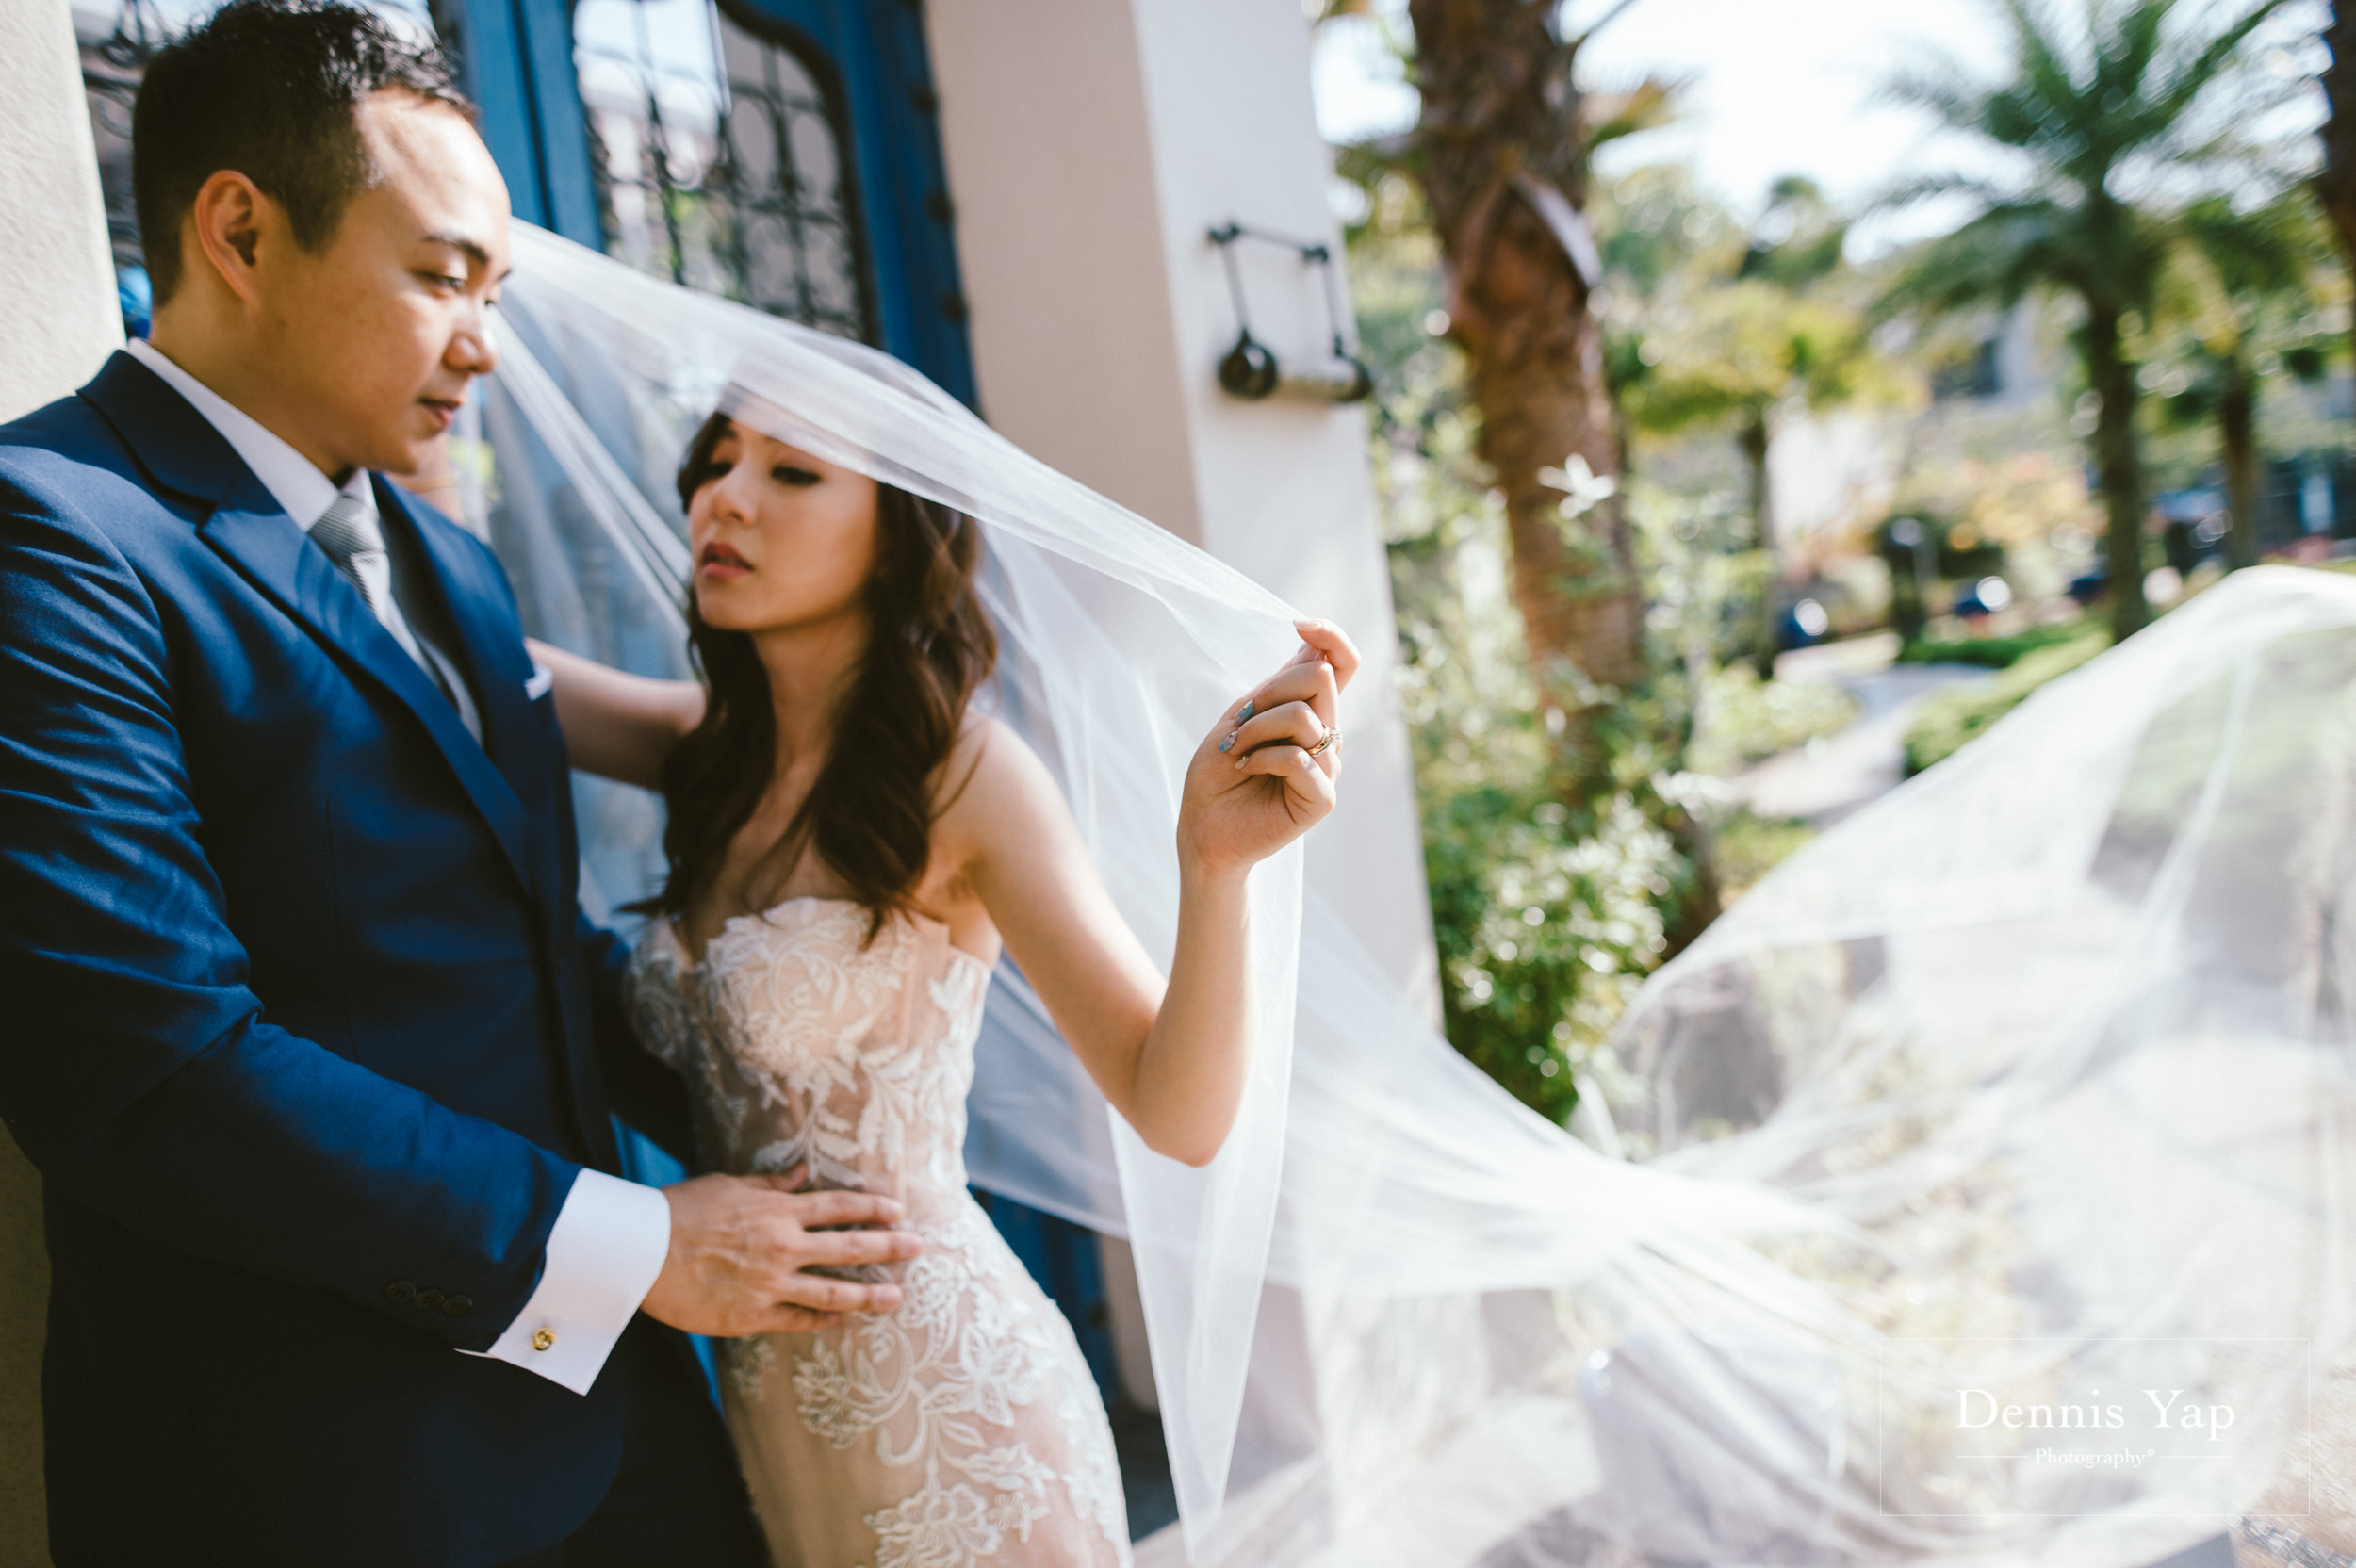 cross grace pre wedding st regis langkawi luxury style beloved dennis yap photography malaysia top wedding photographer dennis yap-17.jpg